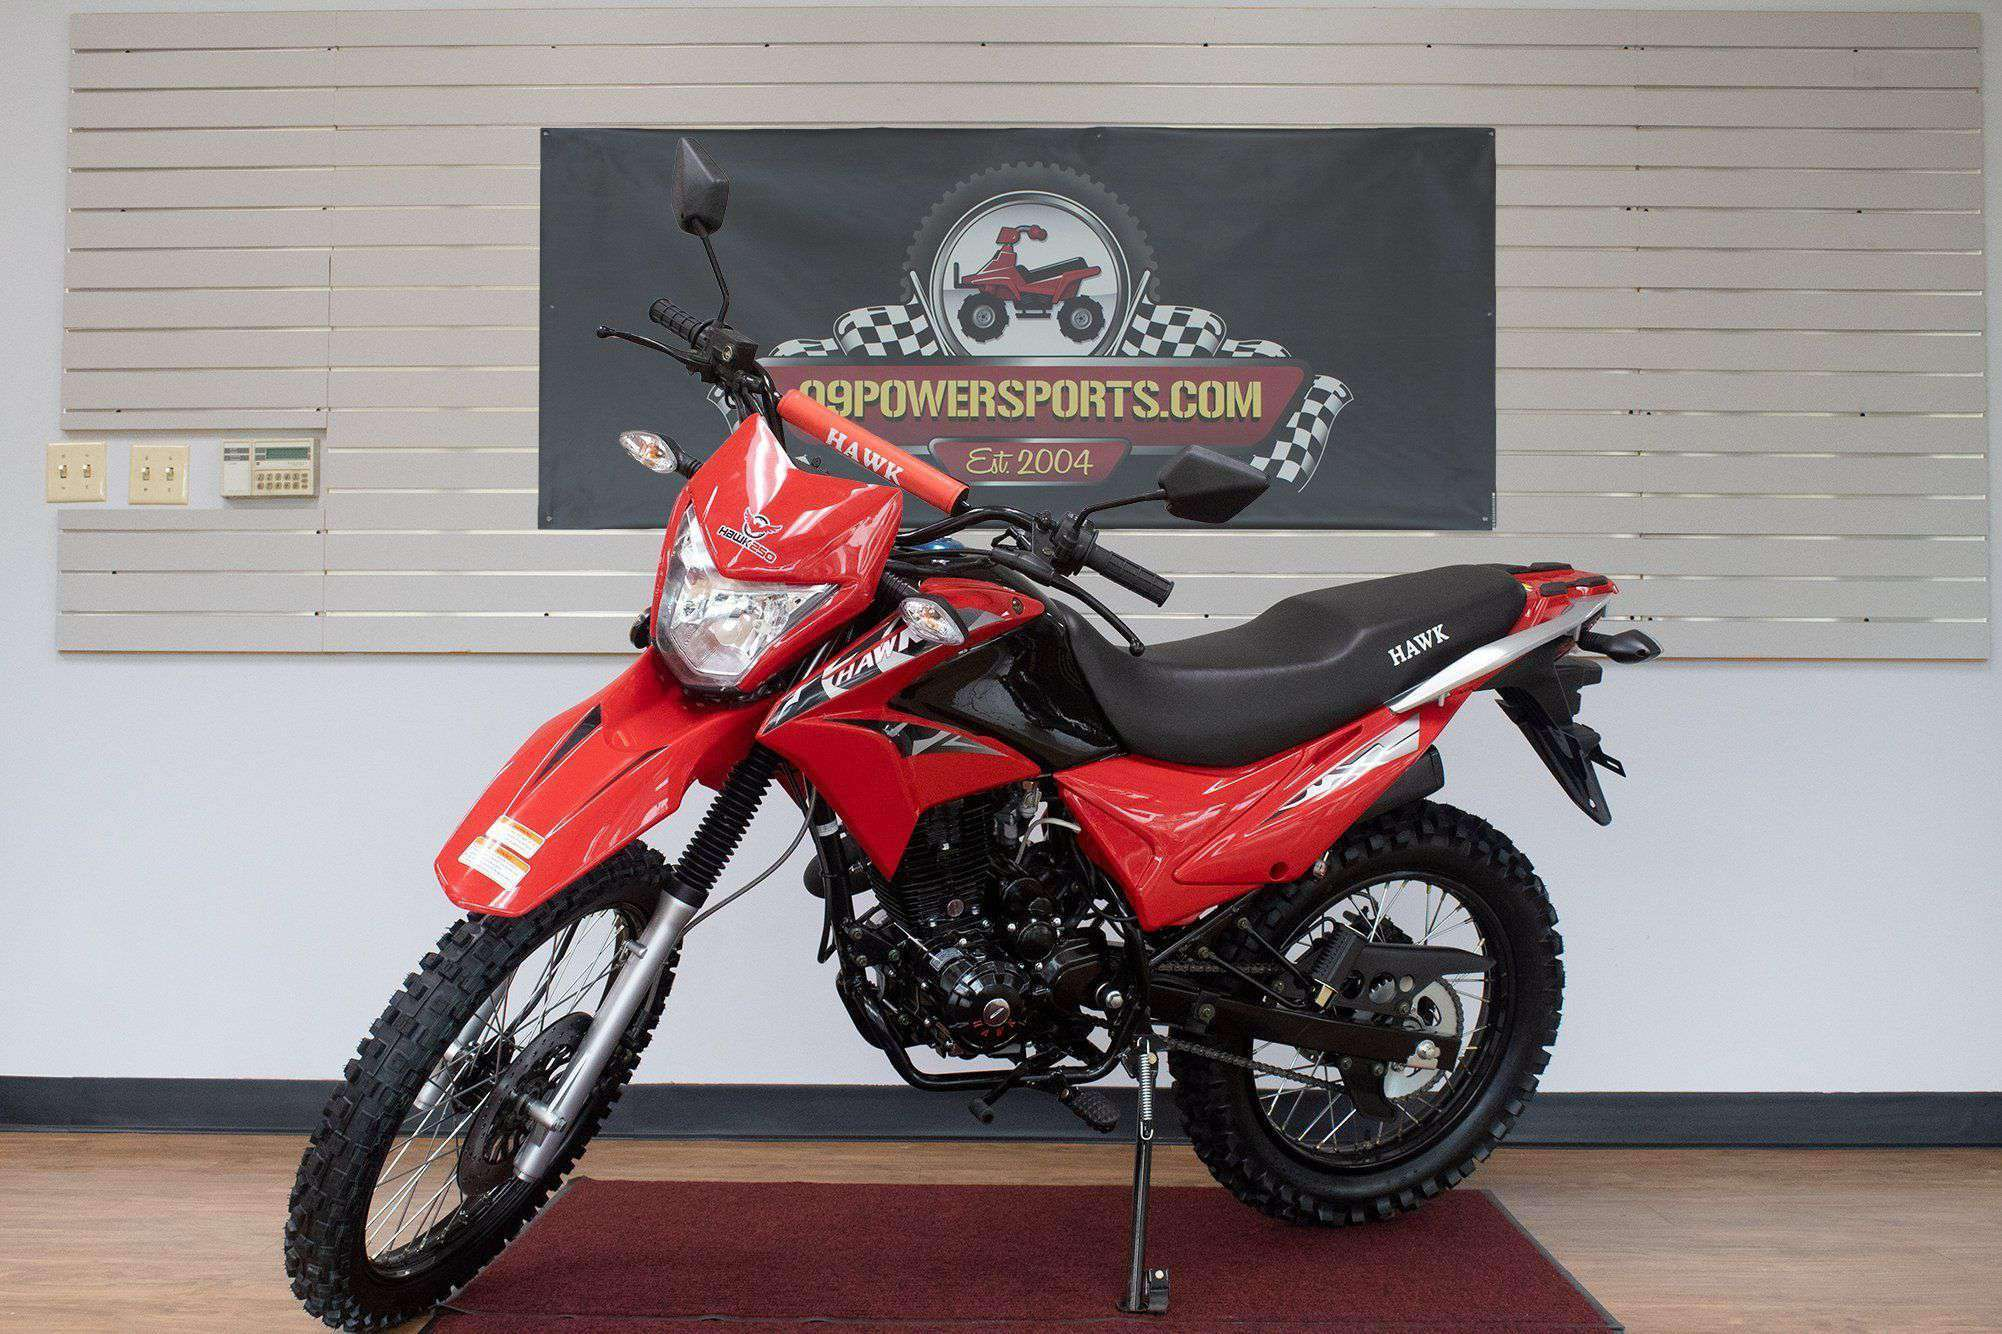 Red 250cc Dirt Bike Hawk 250 Enduro Street Bike Motorcycle Bike with Gloves Sunglasses and Handgrip